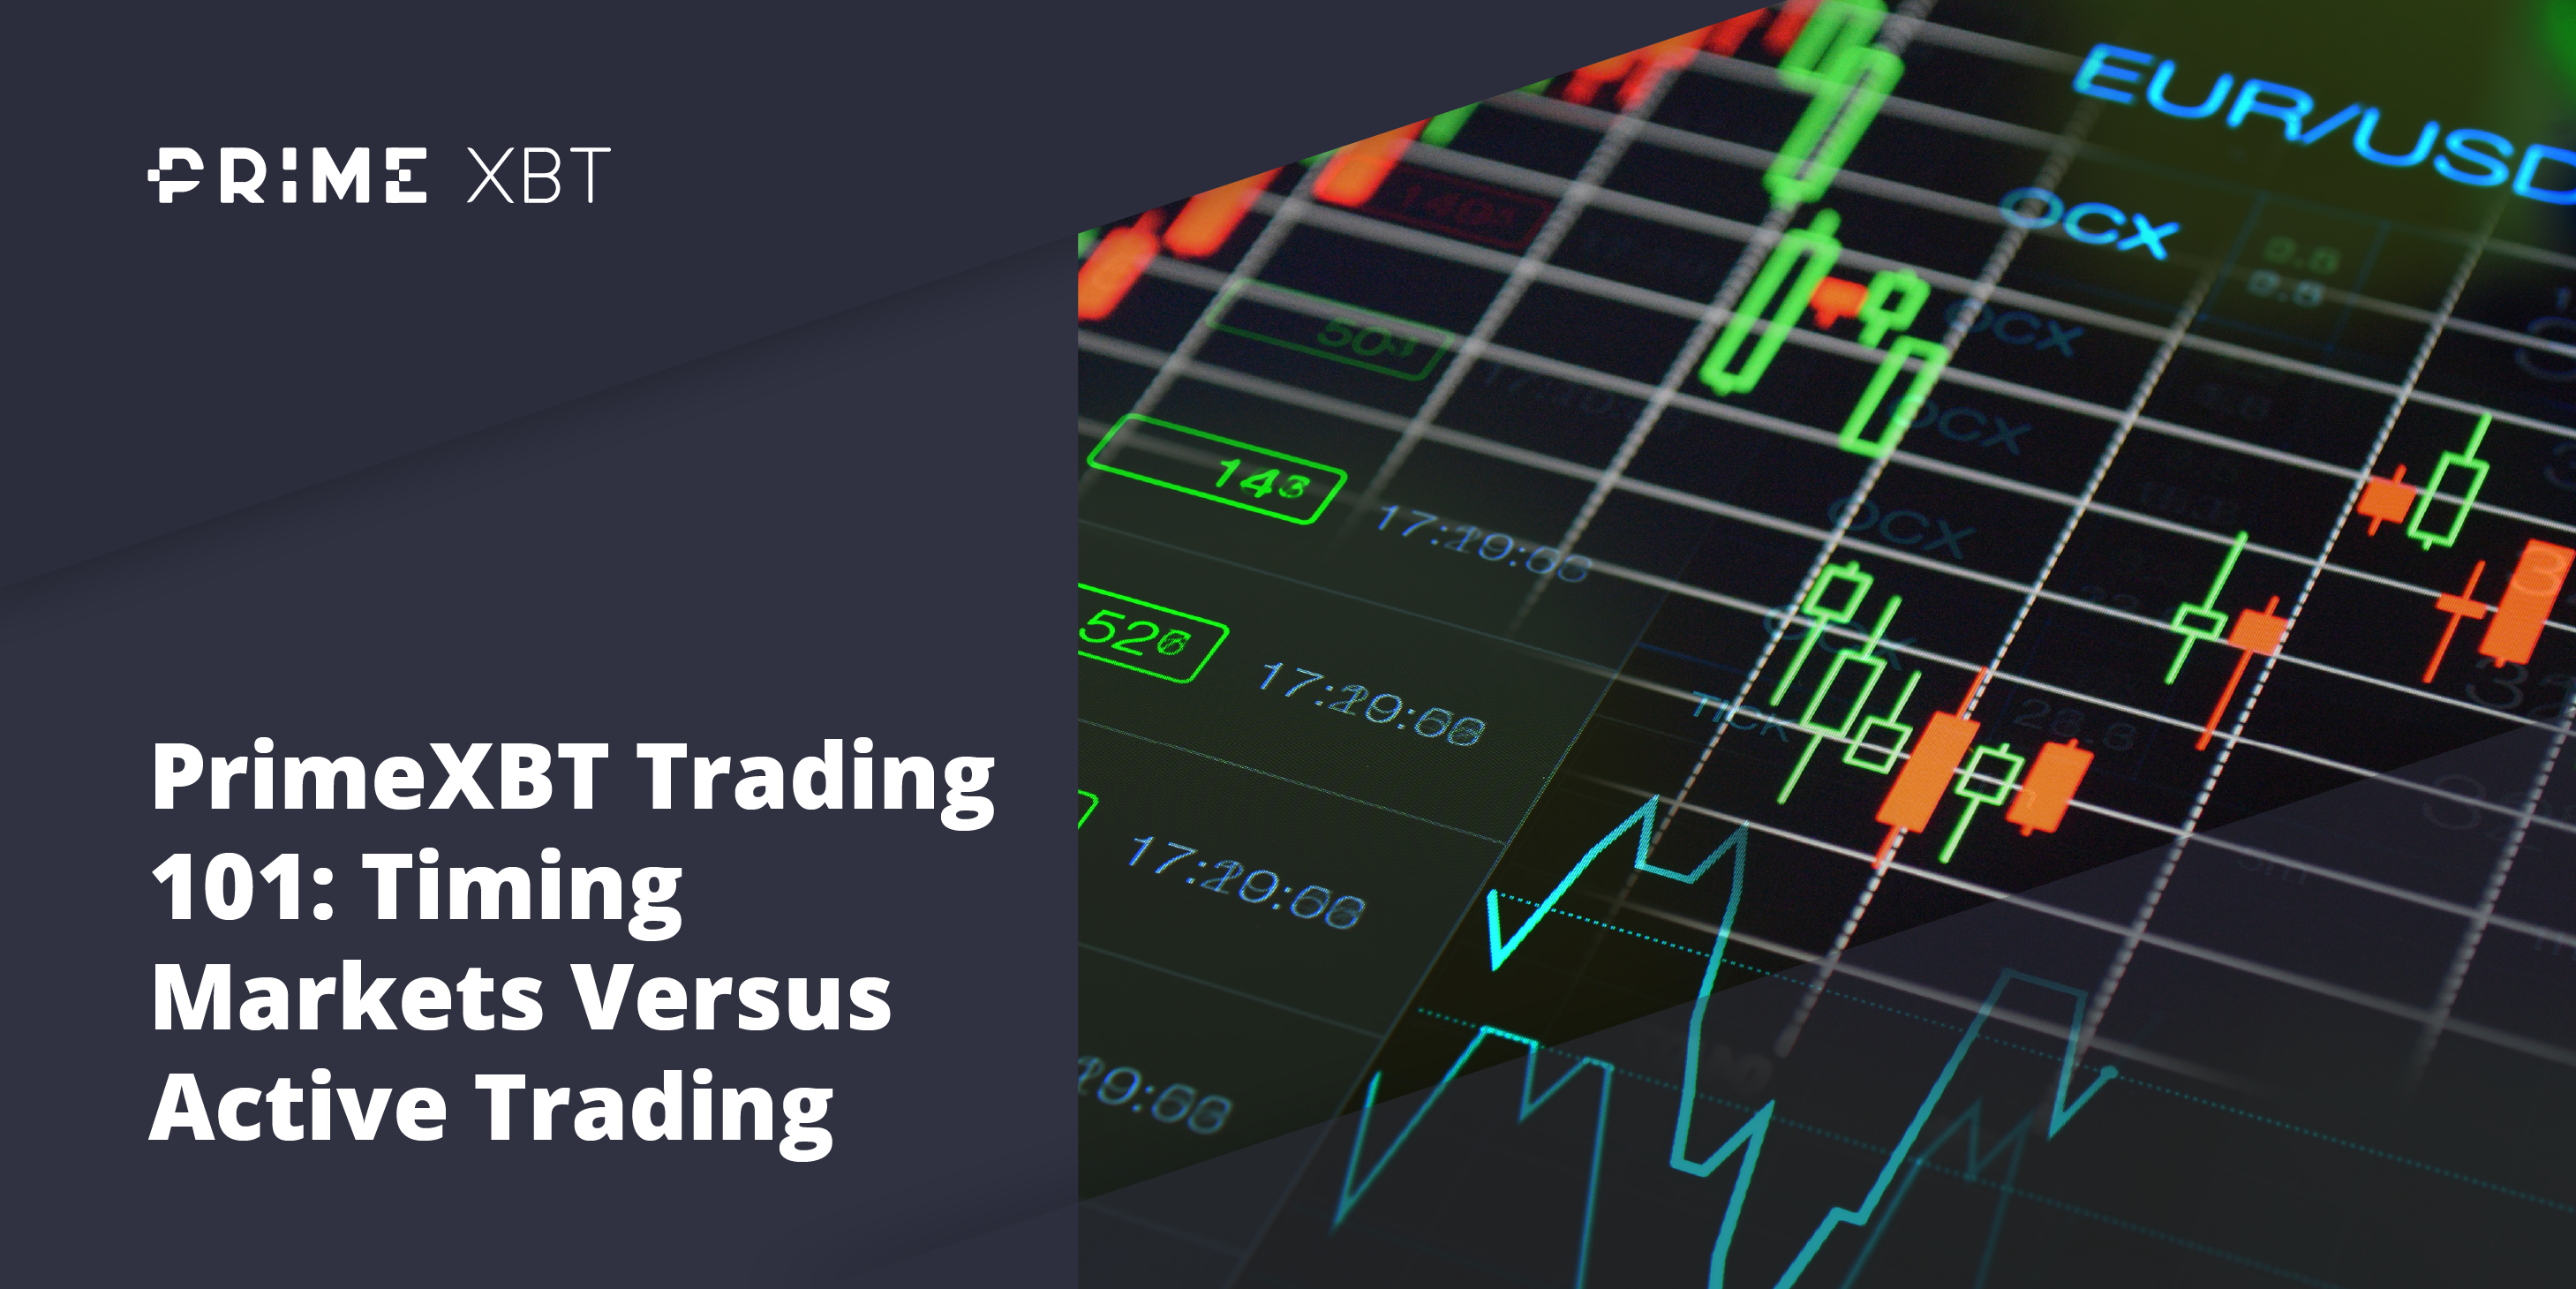 PrimeXBT Trading 101: Timing Markets Versus Active Trading